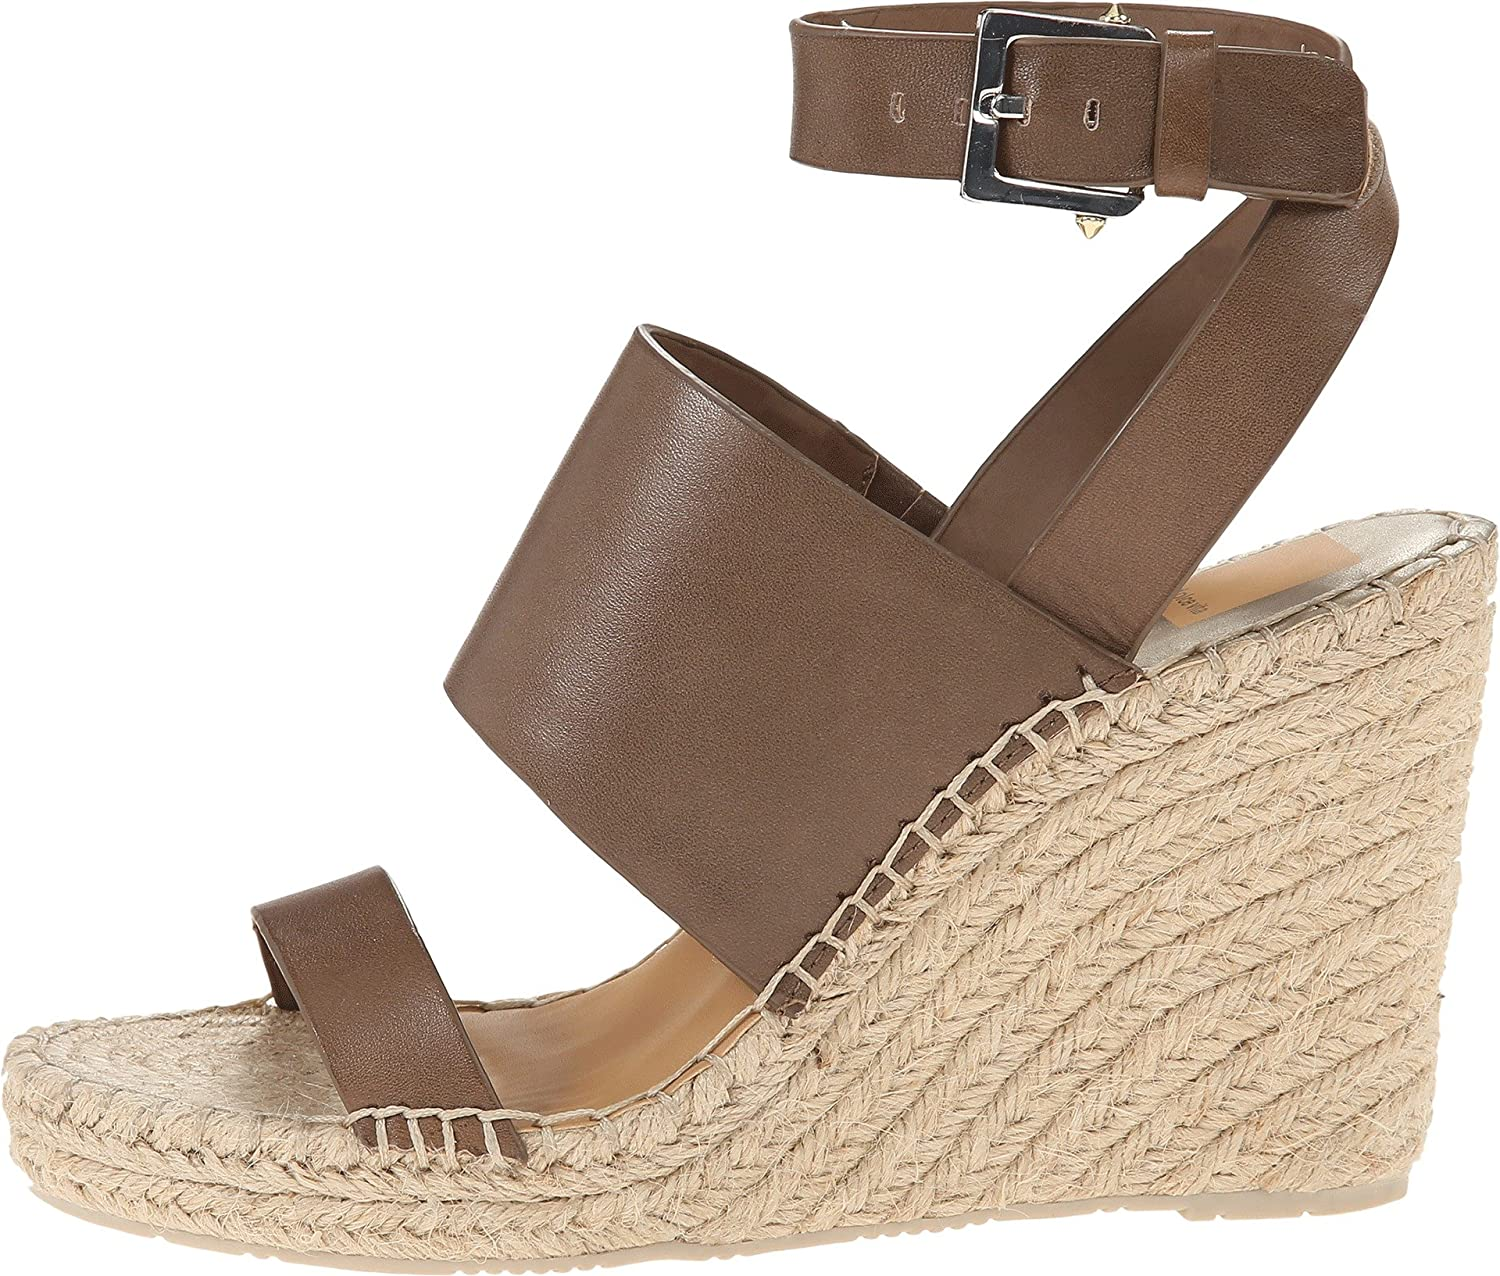 Dolce Wedge Vita Women's Nessah Espadrille Wedge Dolce B00Q6NBHSY 9 B(M) US|Olive Leather 536533